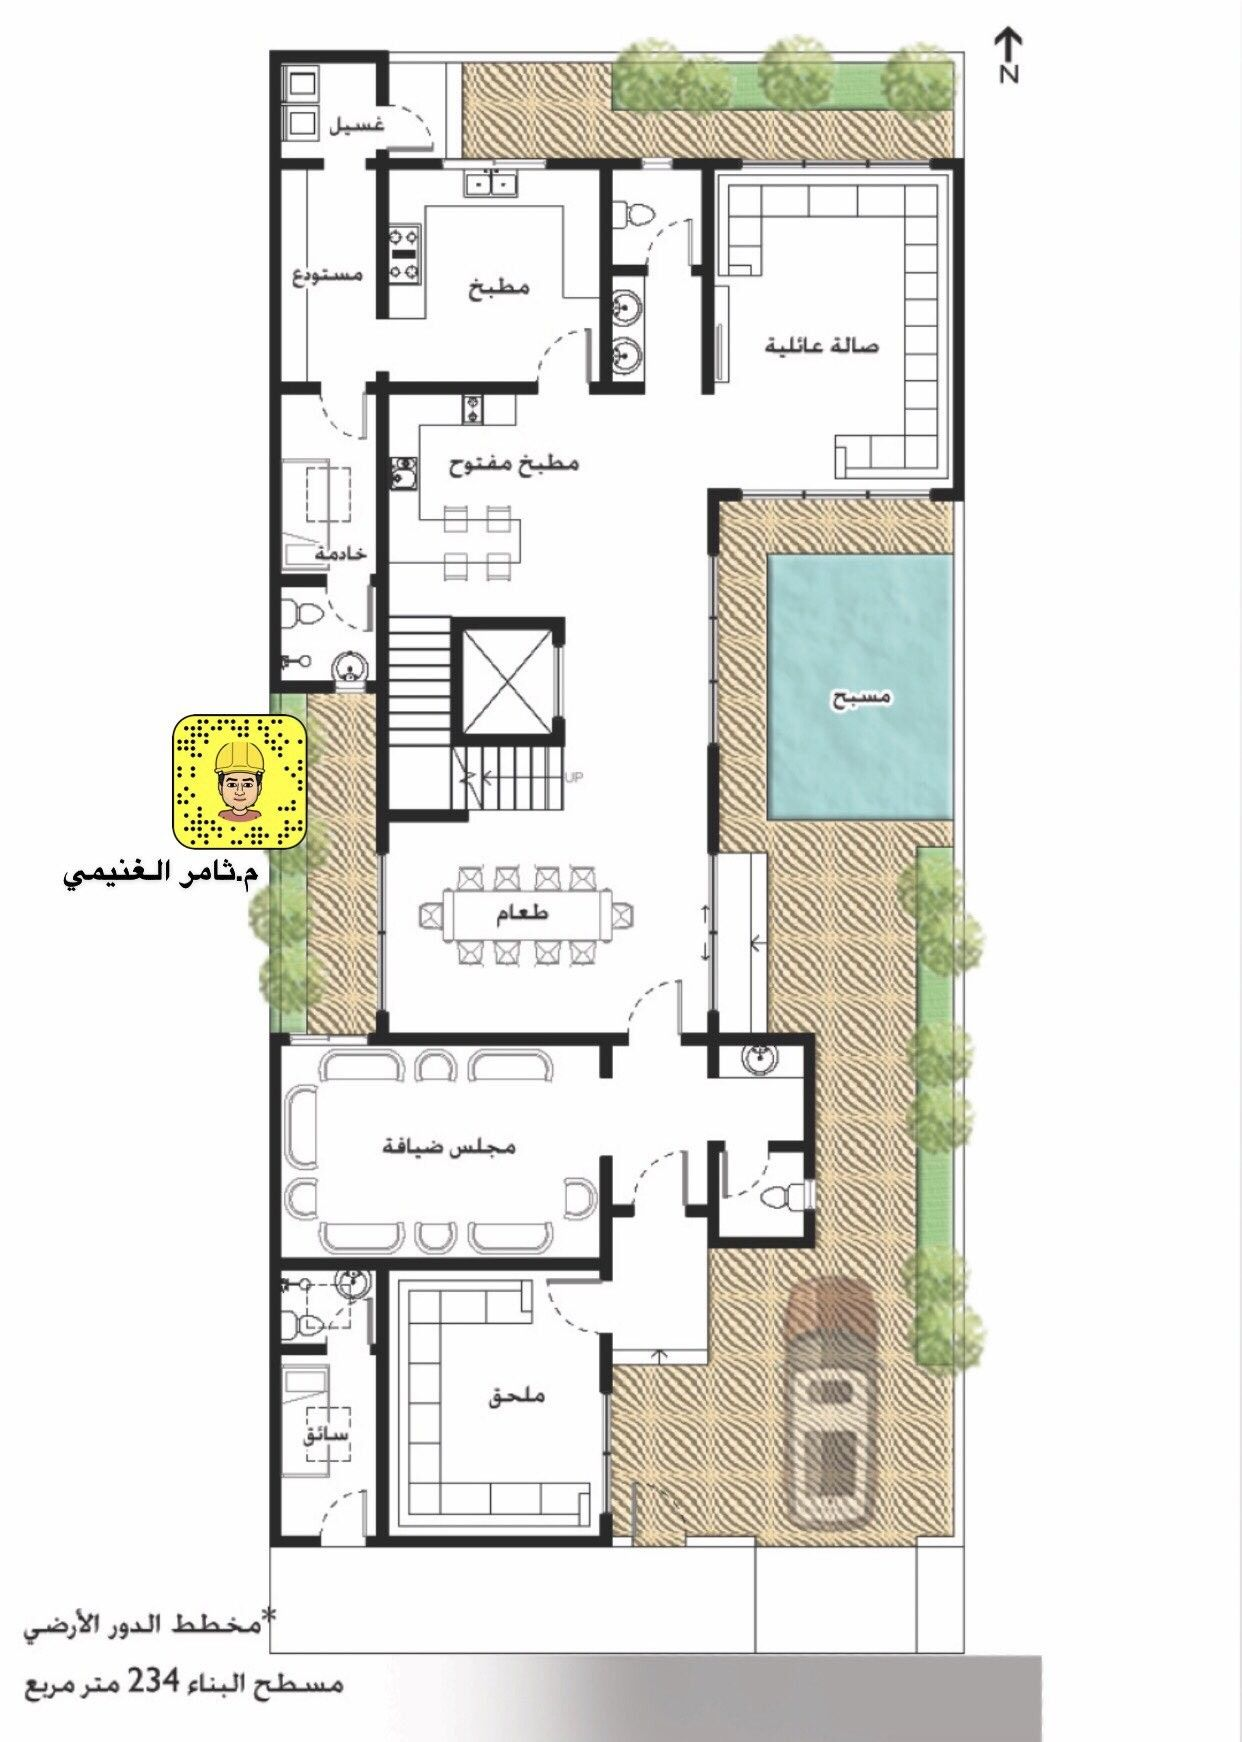 Pin By Khalid Aldarbi On Villa 2bhk House Plan Architectural Floor Plans Model House Plan